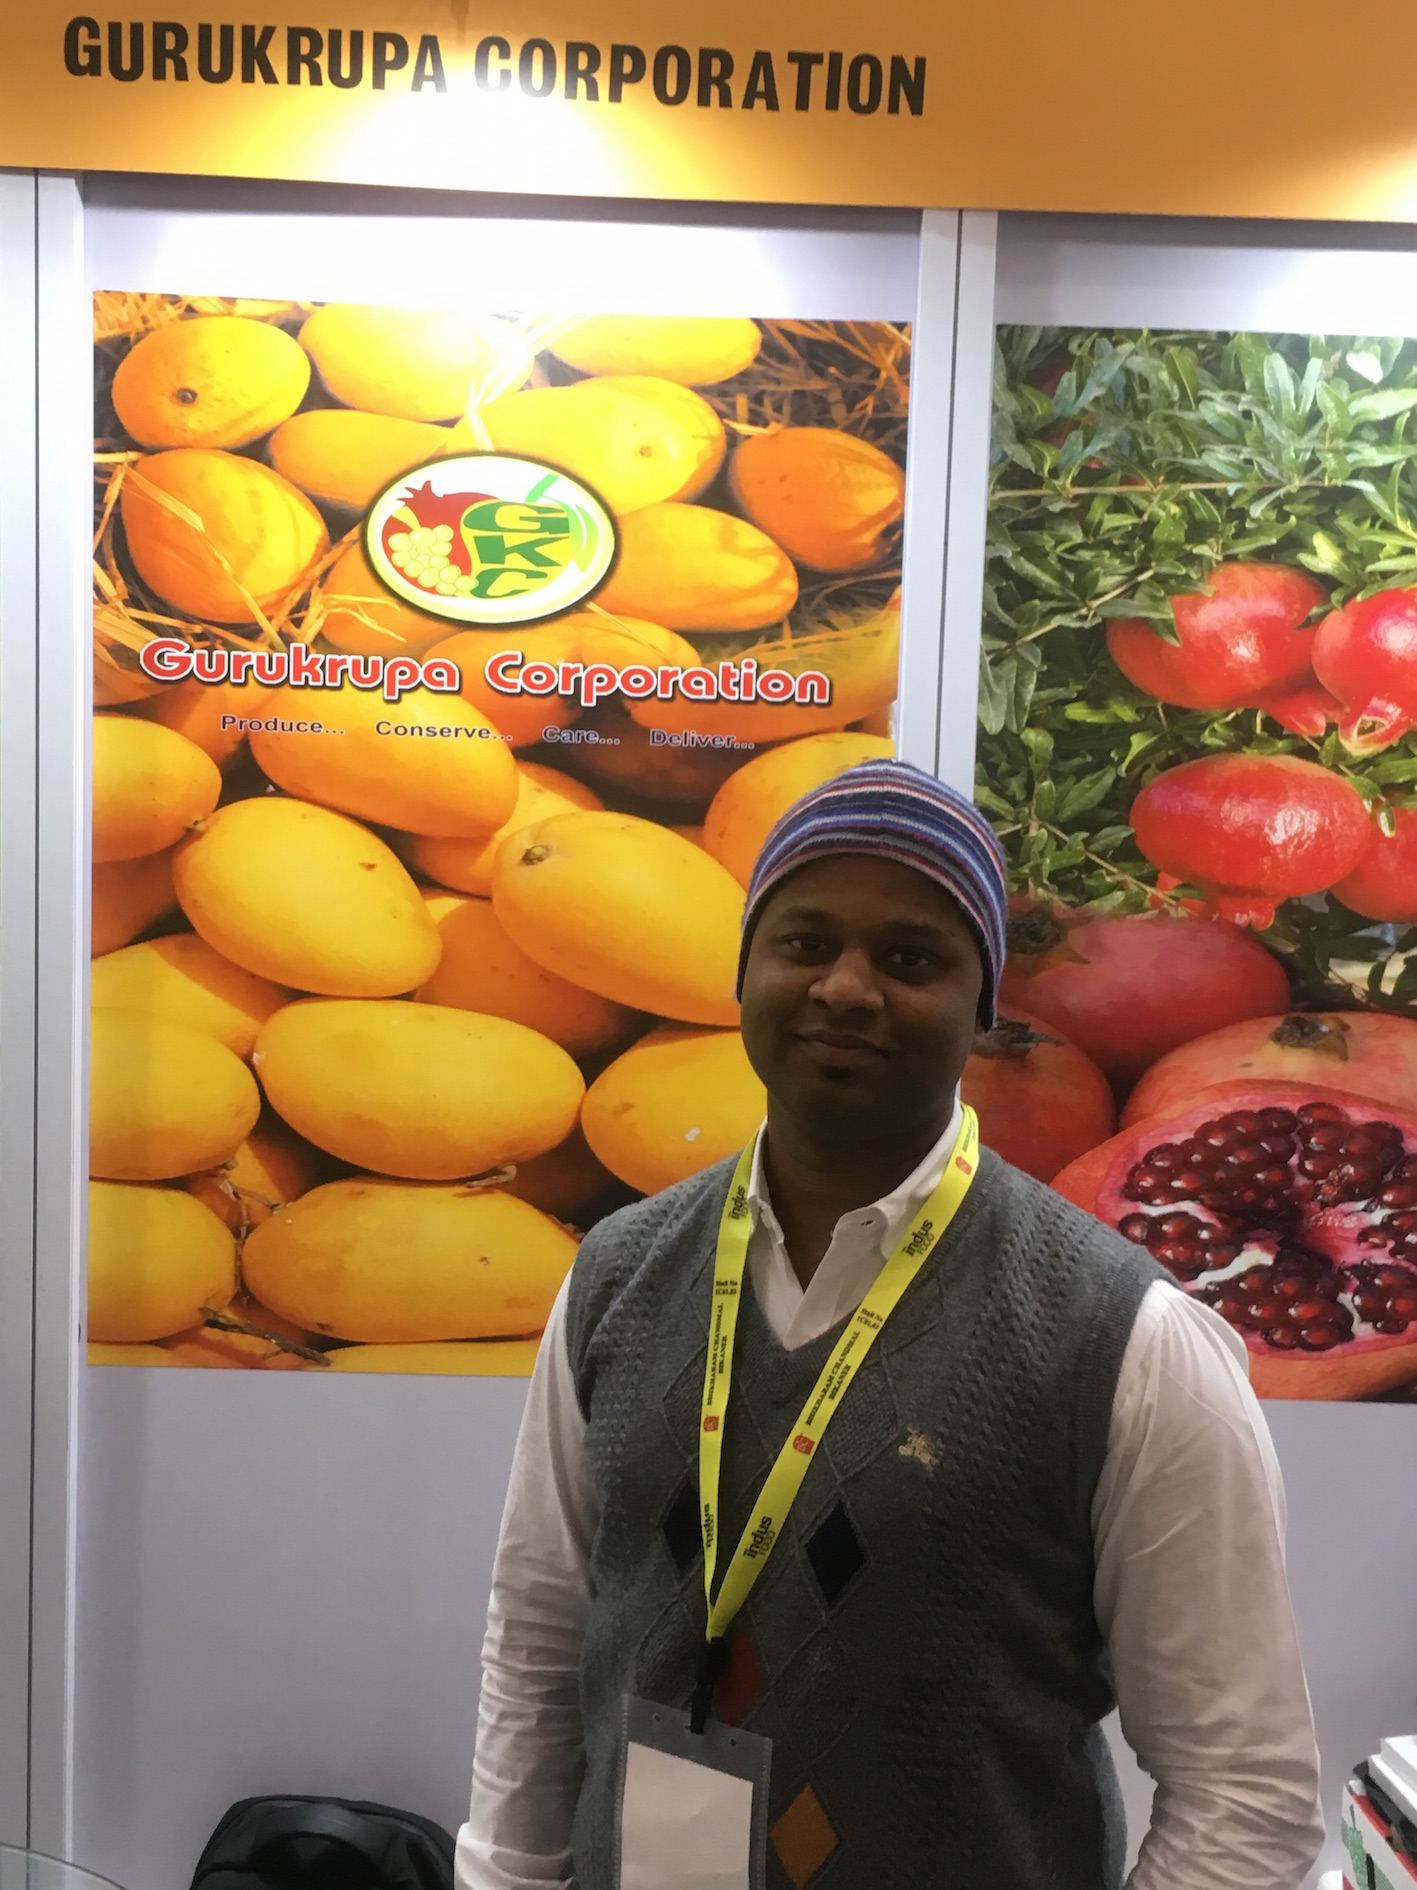 Gurukrupa, a prominent Indian fruit exporter and importer